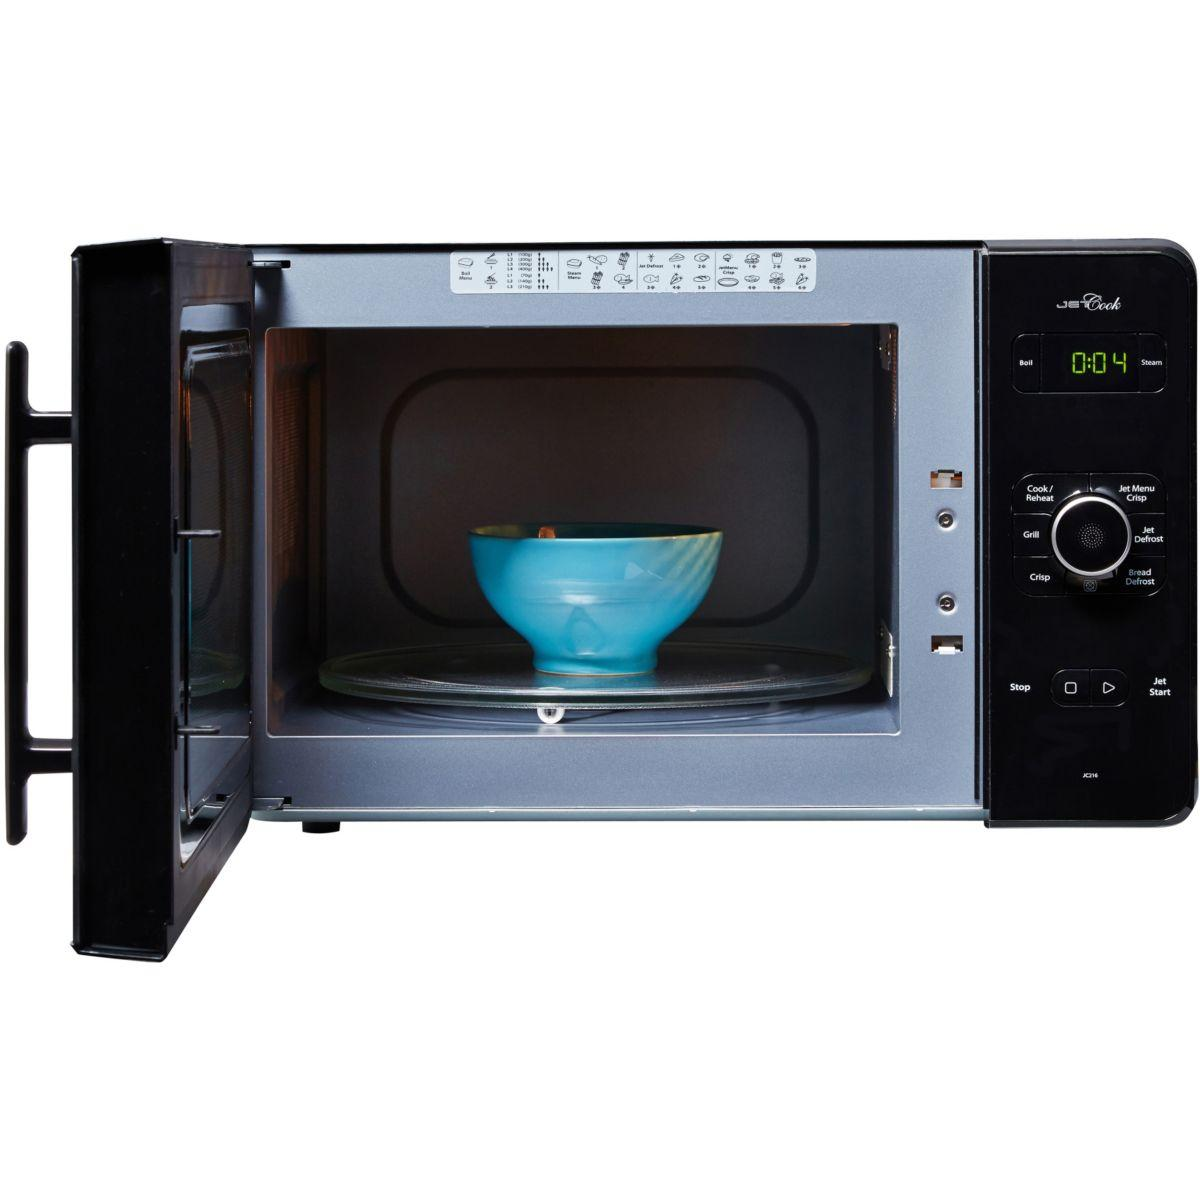 micro-ondes grill whirlpool jc216nb - 30l reconditionné | back market